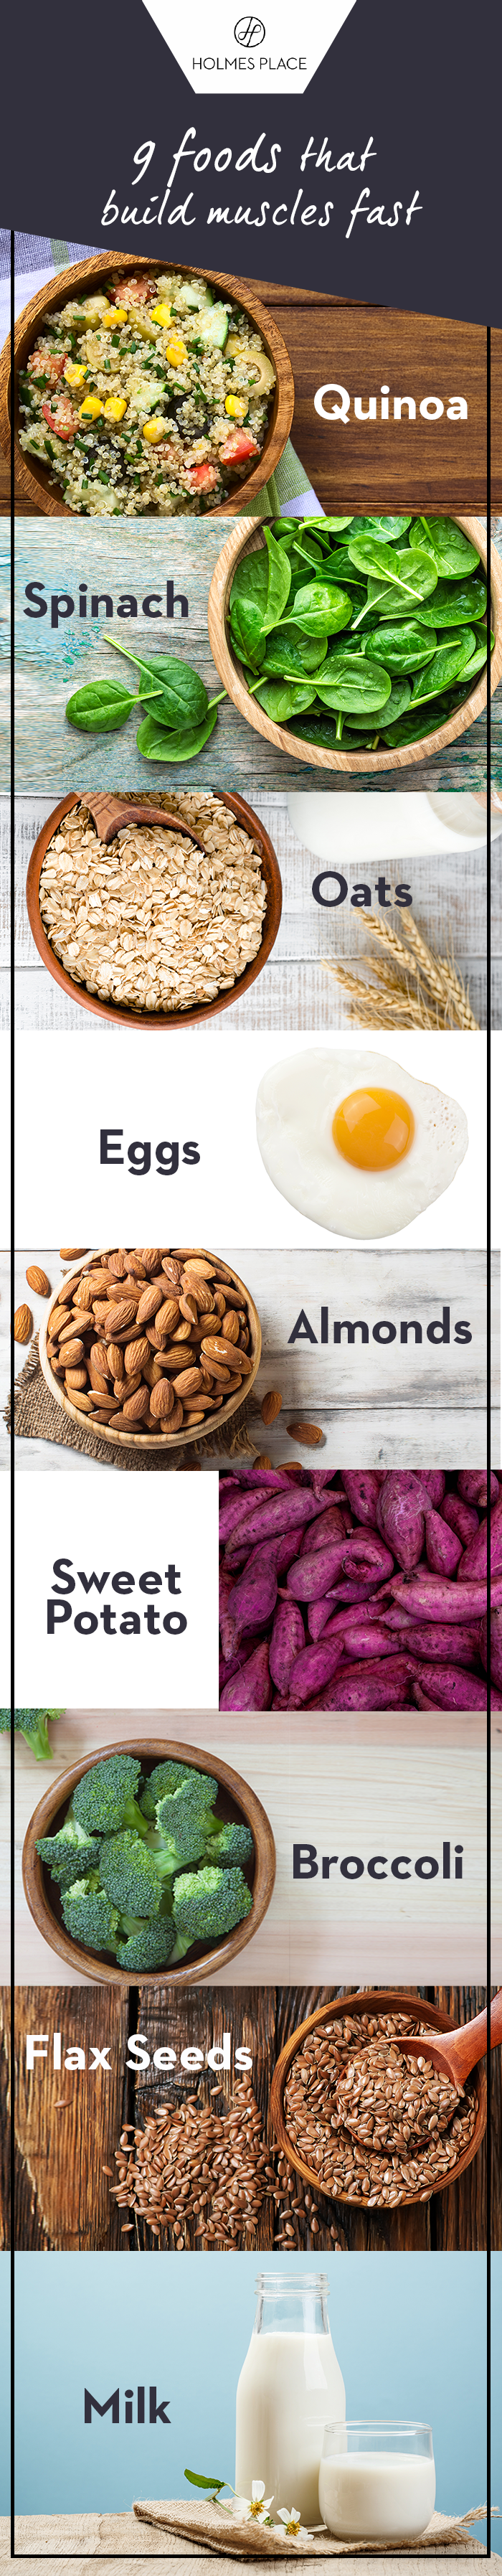 Holmes Place | 9 foods that build muscles fast